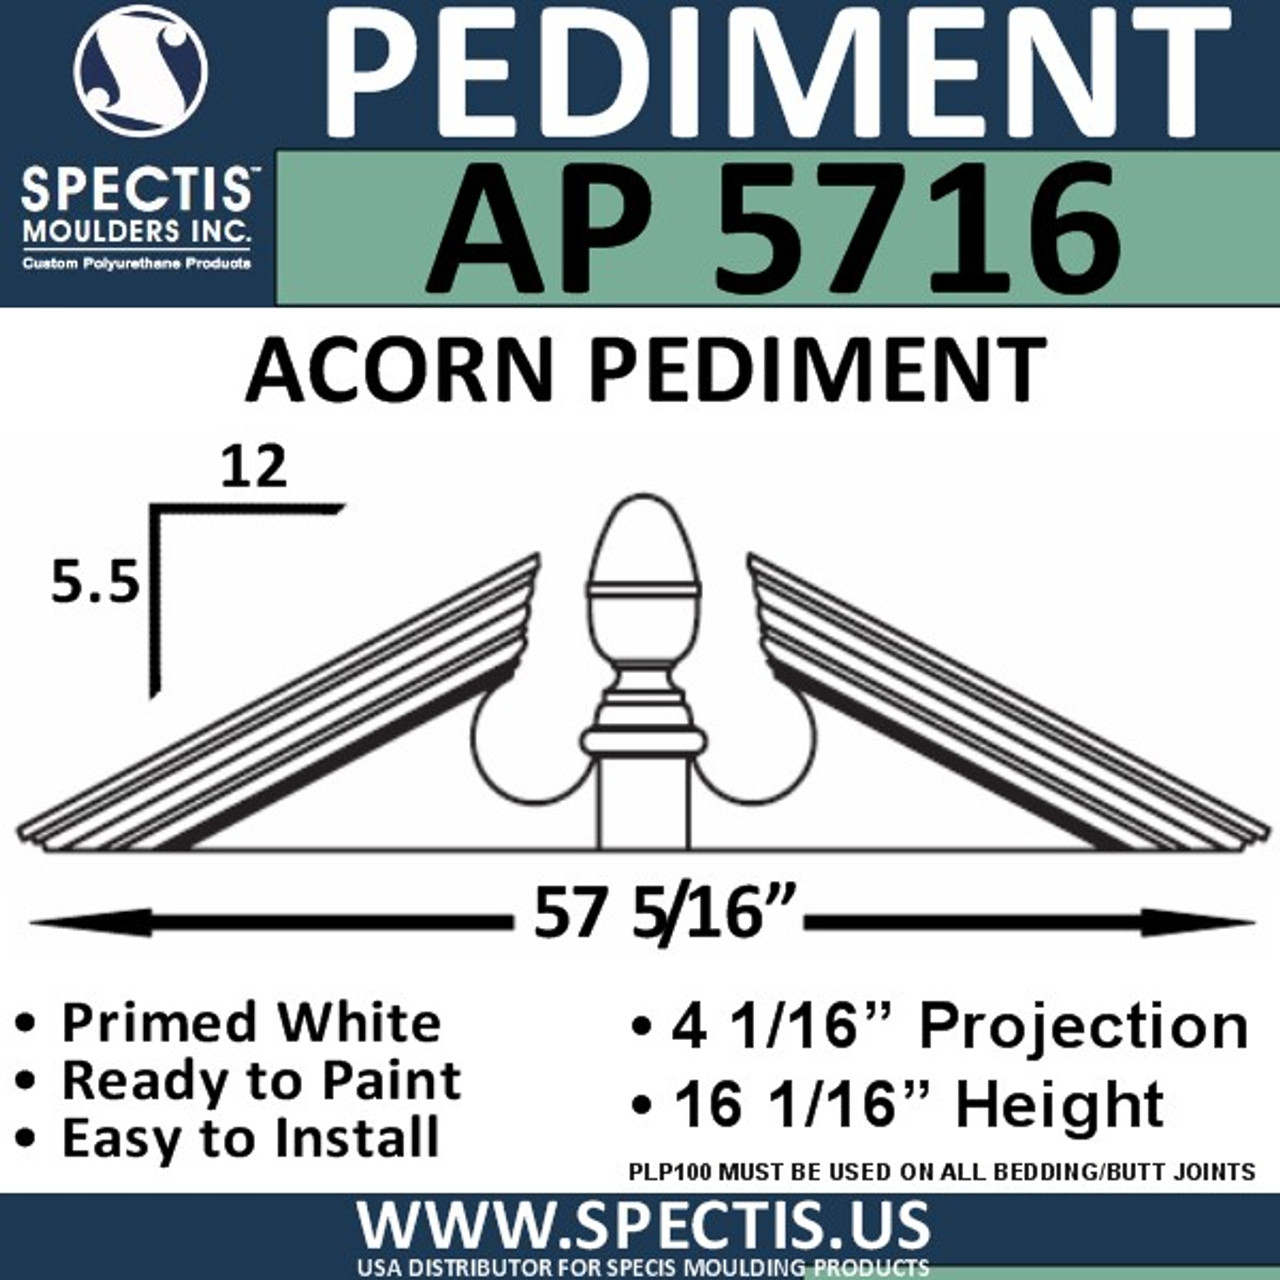 "AP5716 Acorn Pediment for Window/Door 57 5/16"" x 16 1/16"""